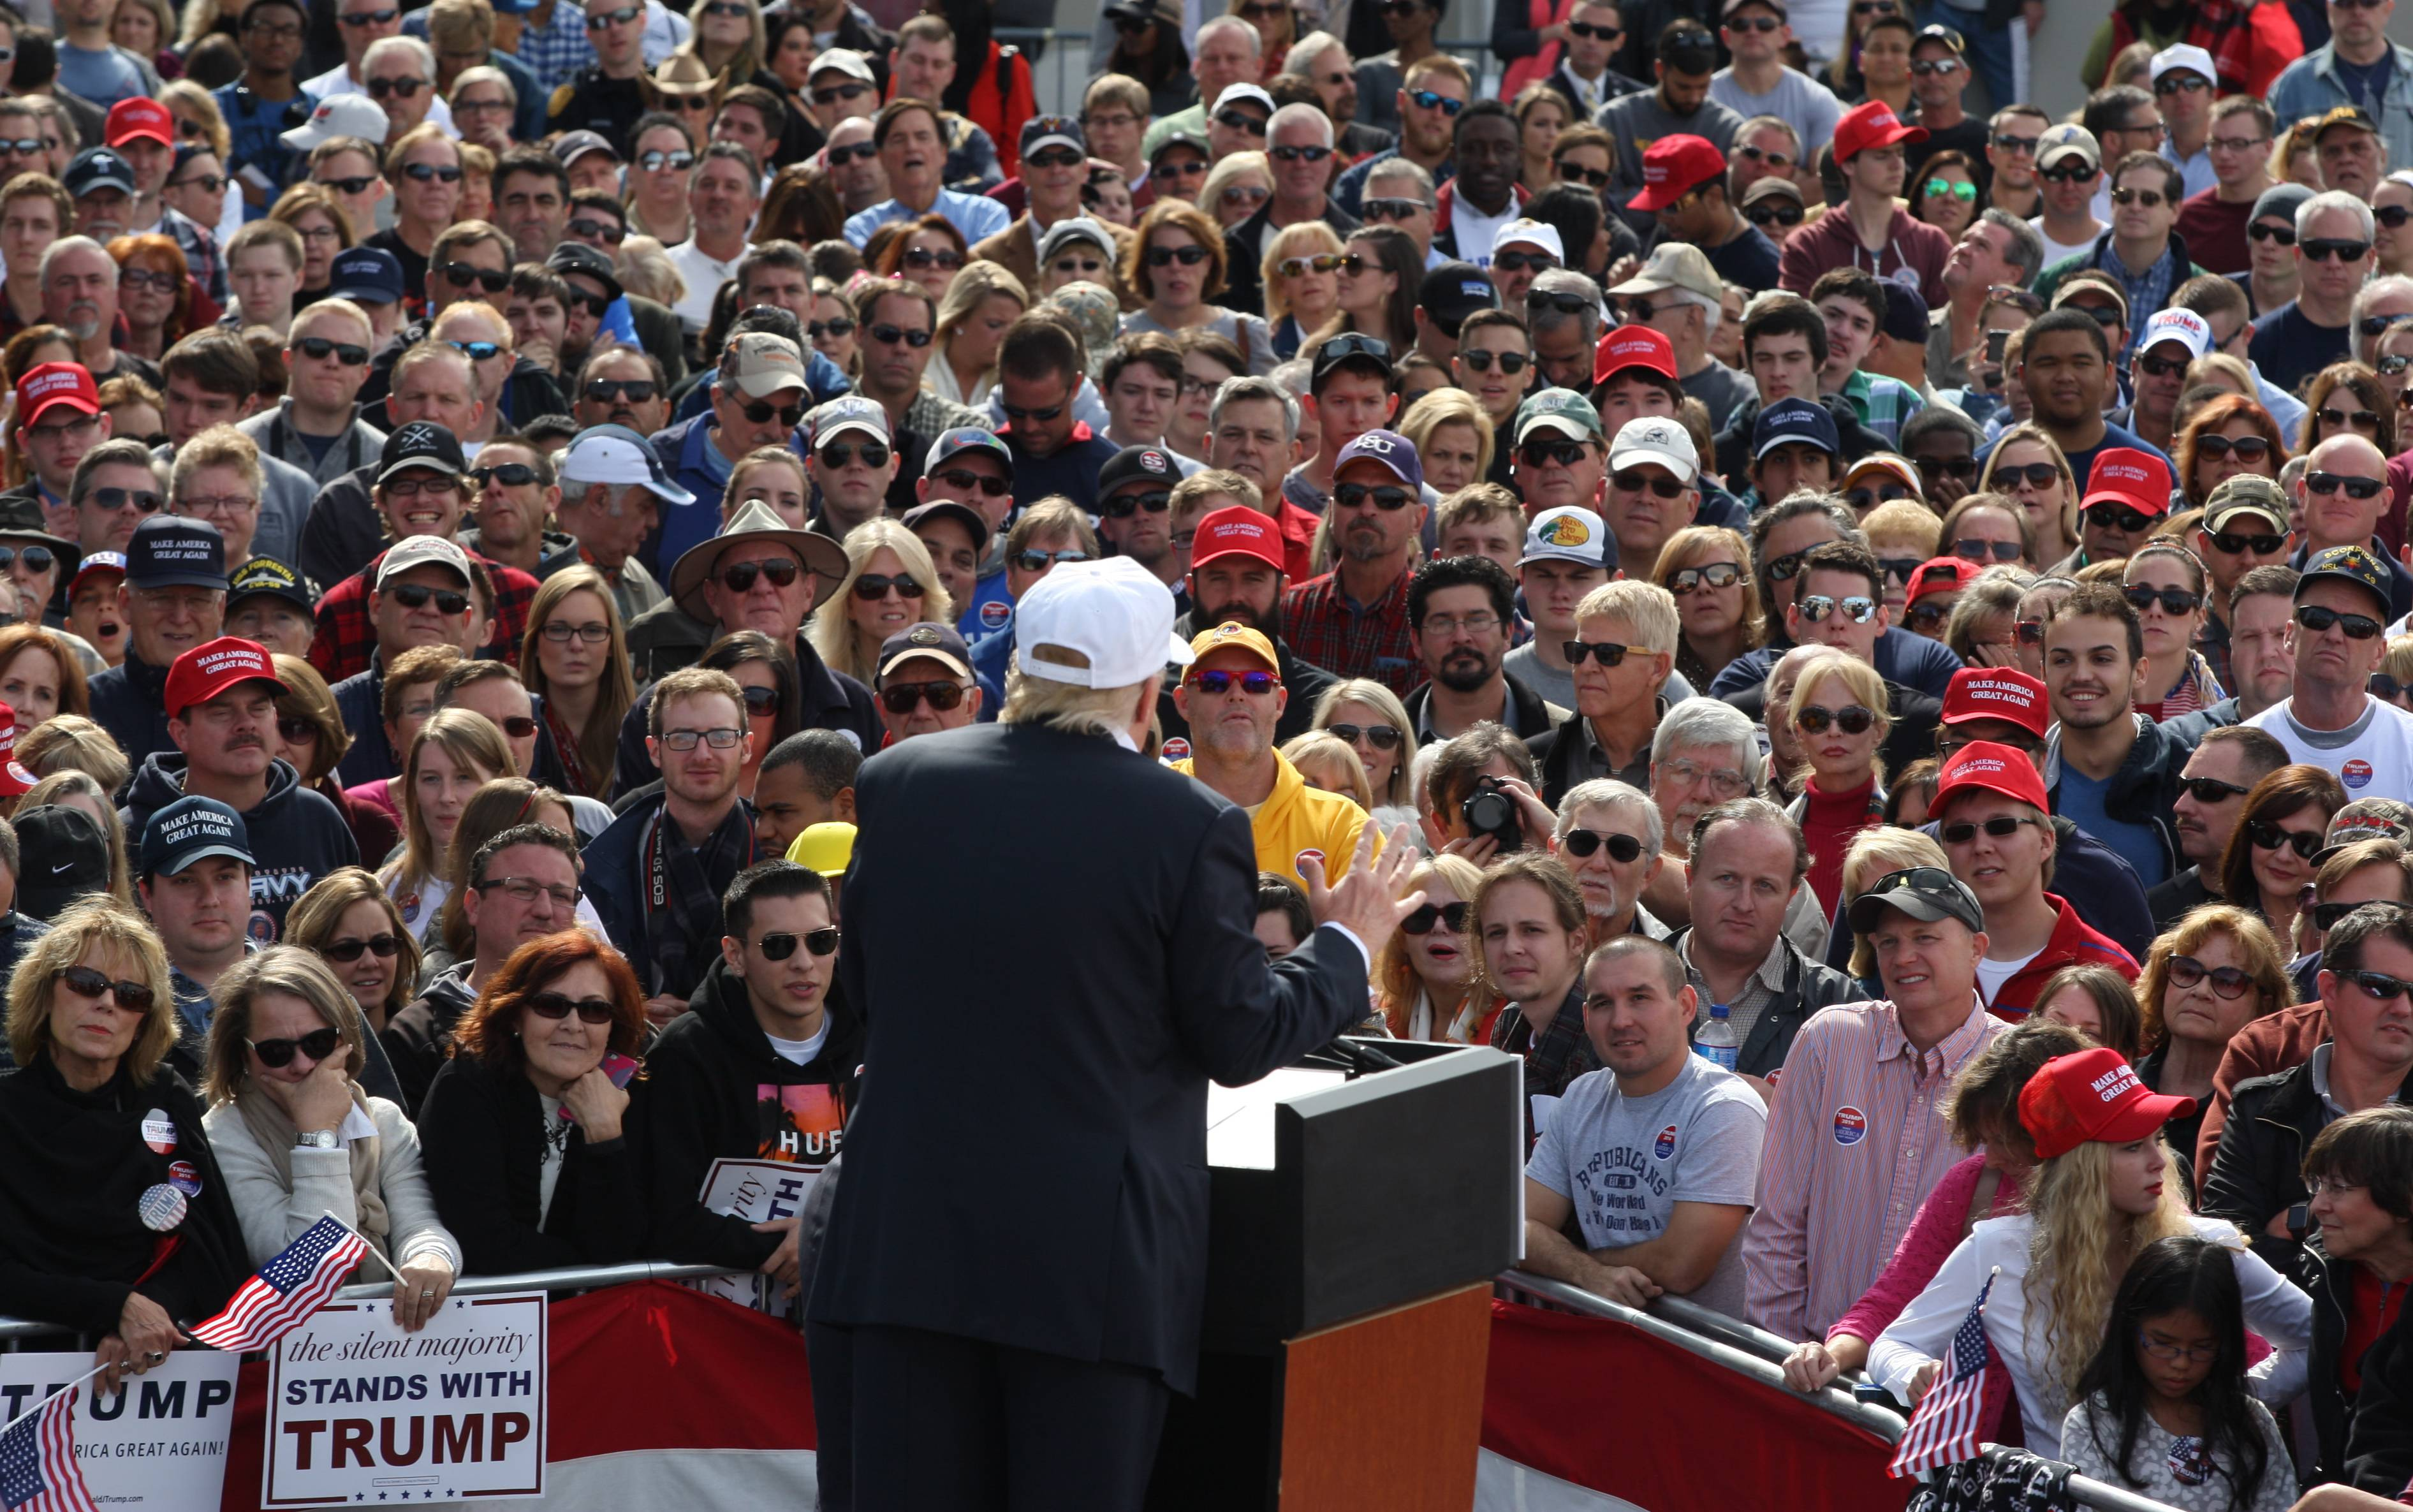 Republican presidential candidate Donald Trump speaks Saturday to supporters during a rally in Norfolk, Va.